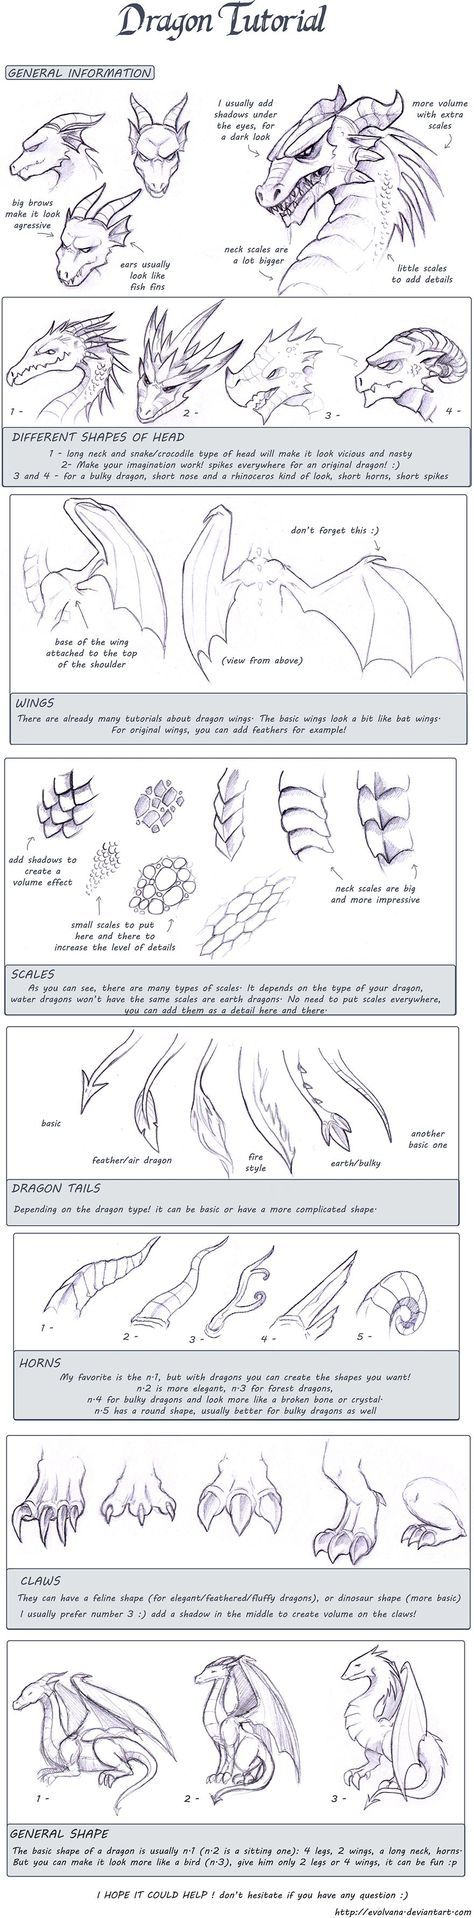 Dragon tutorial by Evolvana.deviantart.com on @deviantART